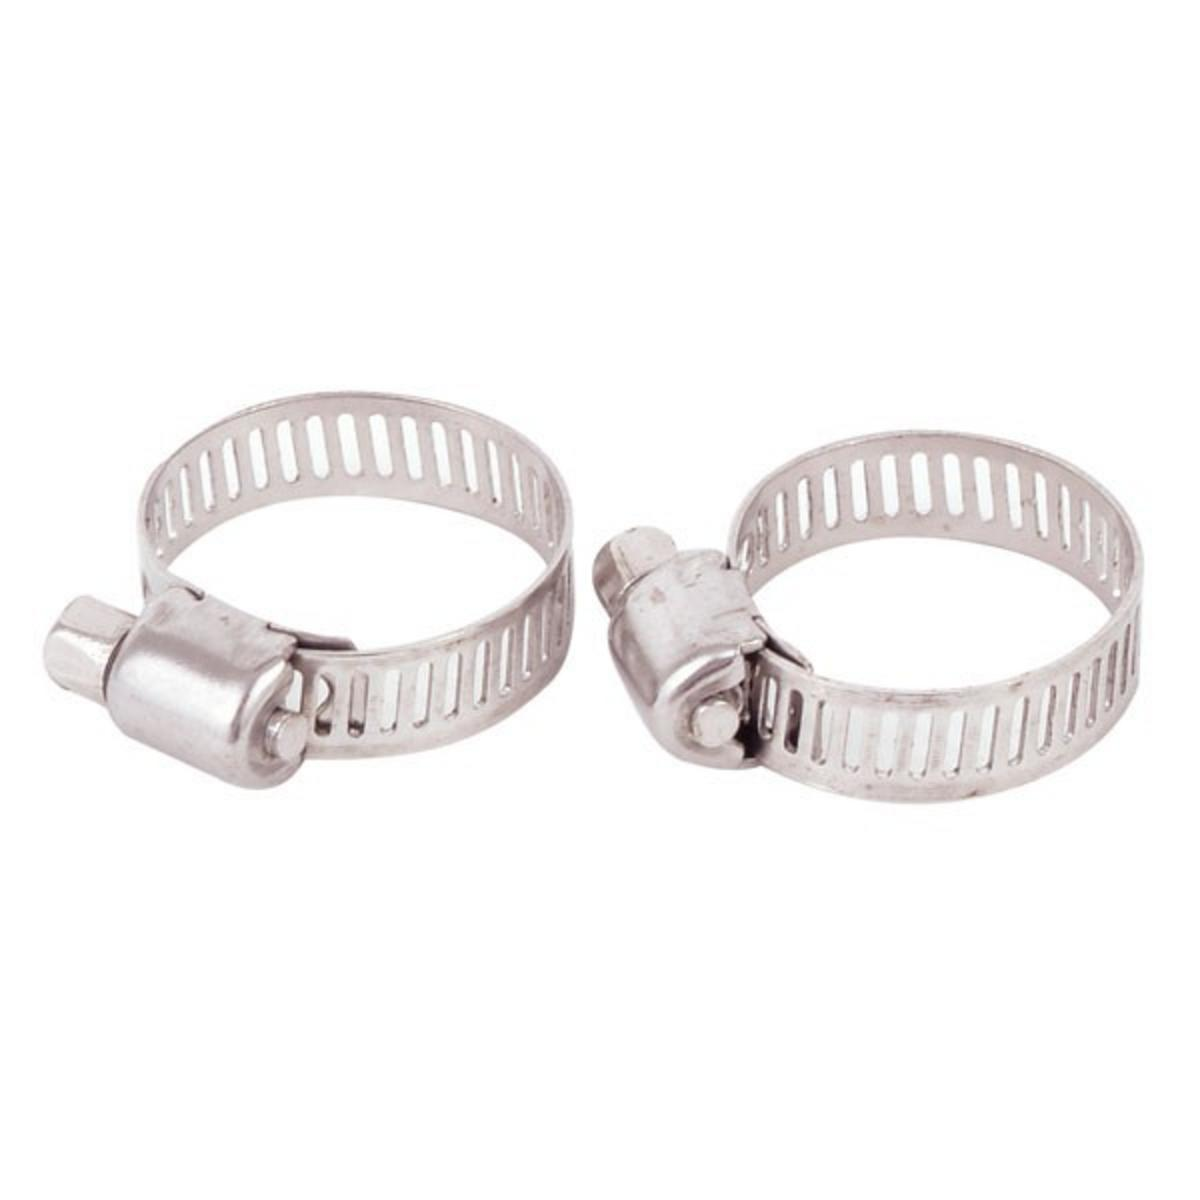 "JARVIS WALKER MARINE GRADE HOSE CLAMP STAINLESS 5/8"" TO 1.25"" PAIR"